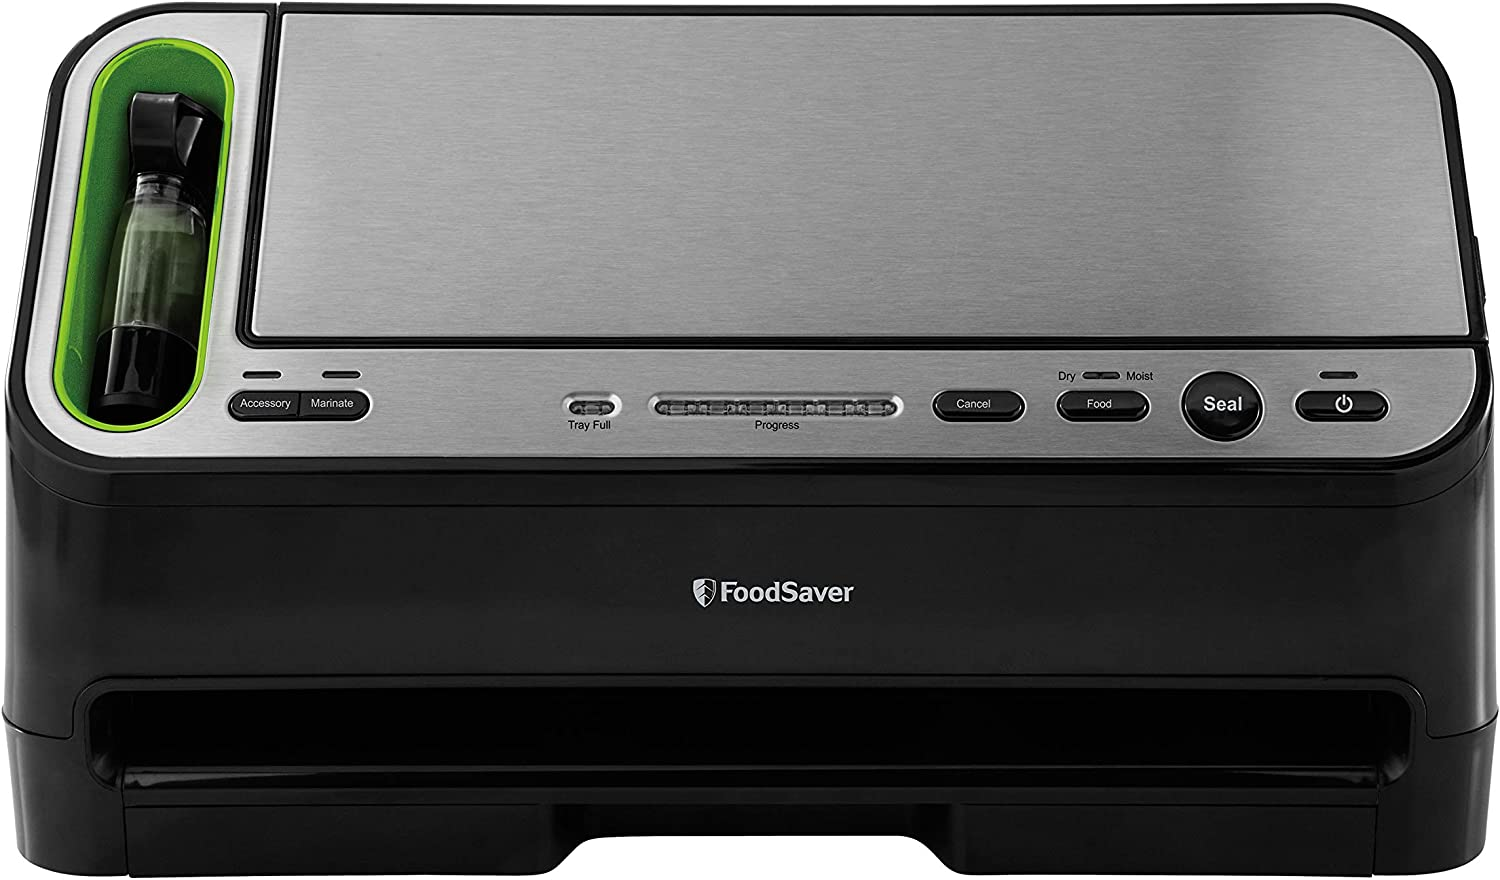 FoodSaver V4840 2-in-1 Vacuum Sealer